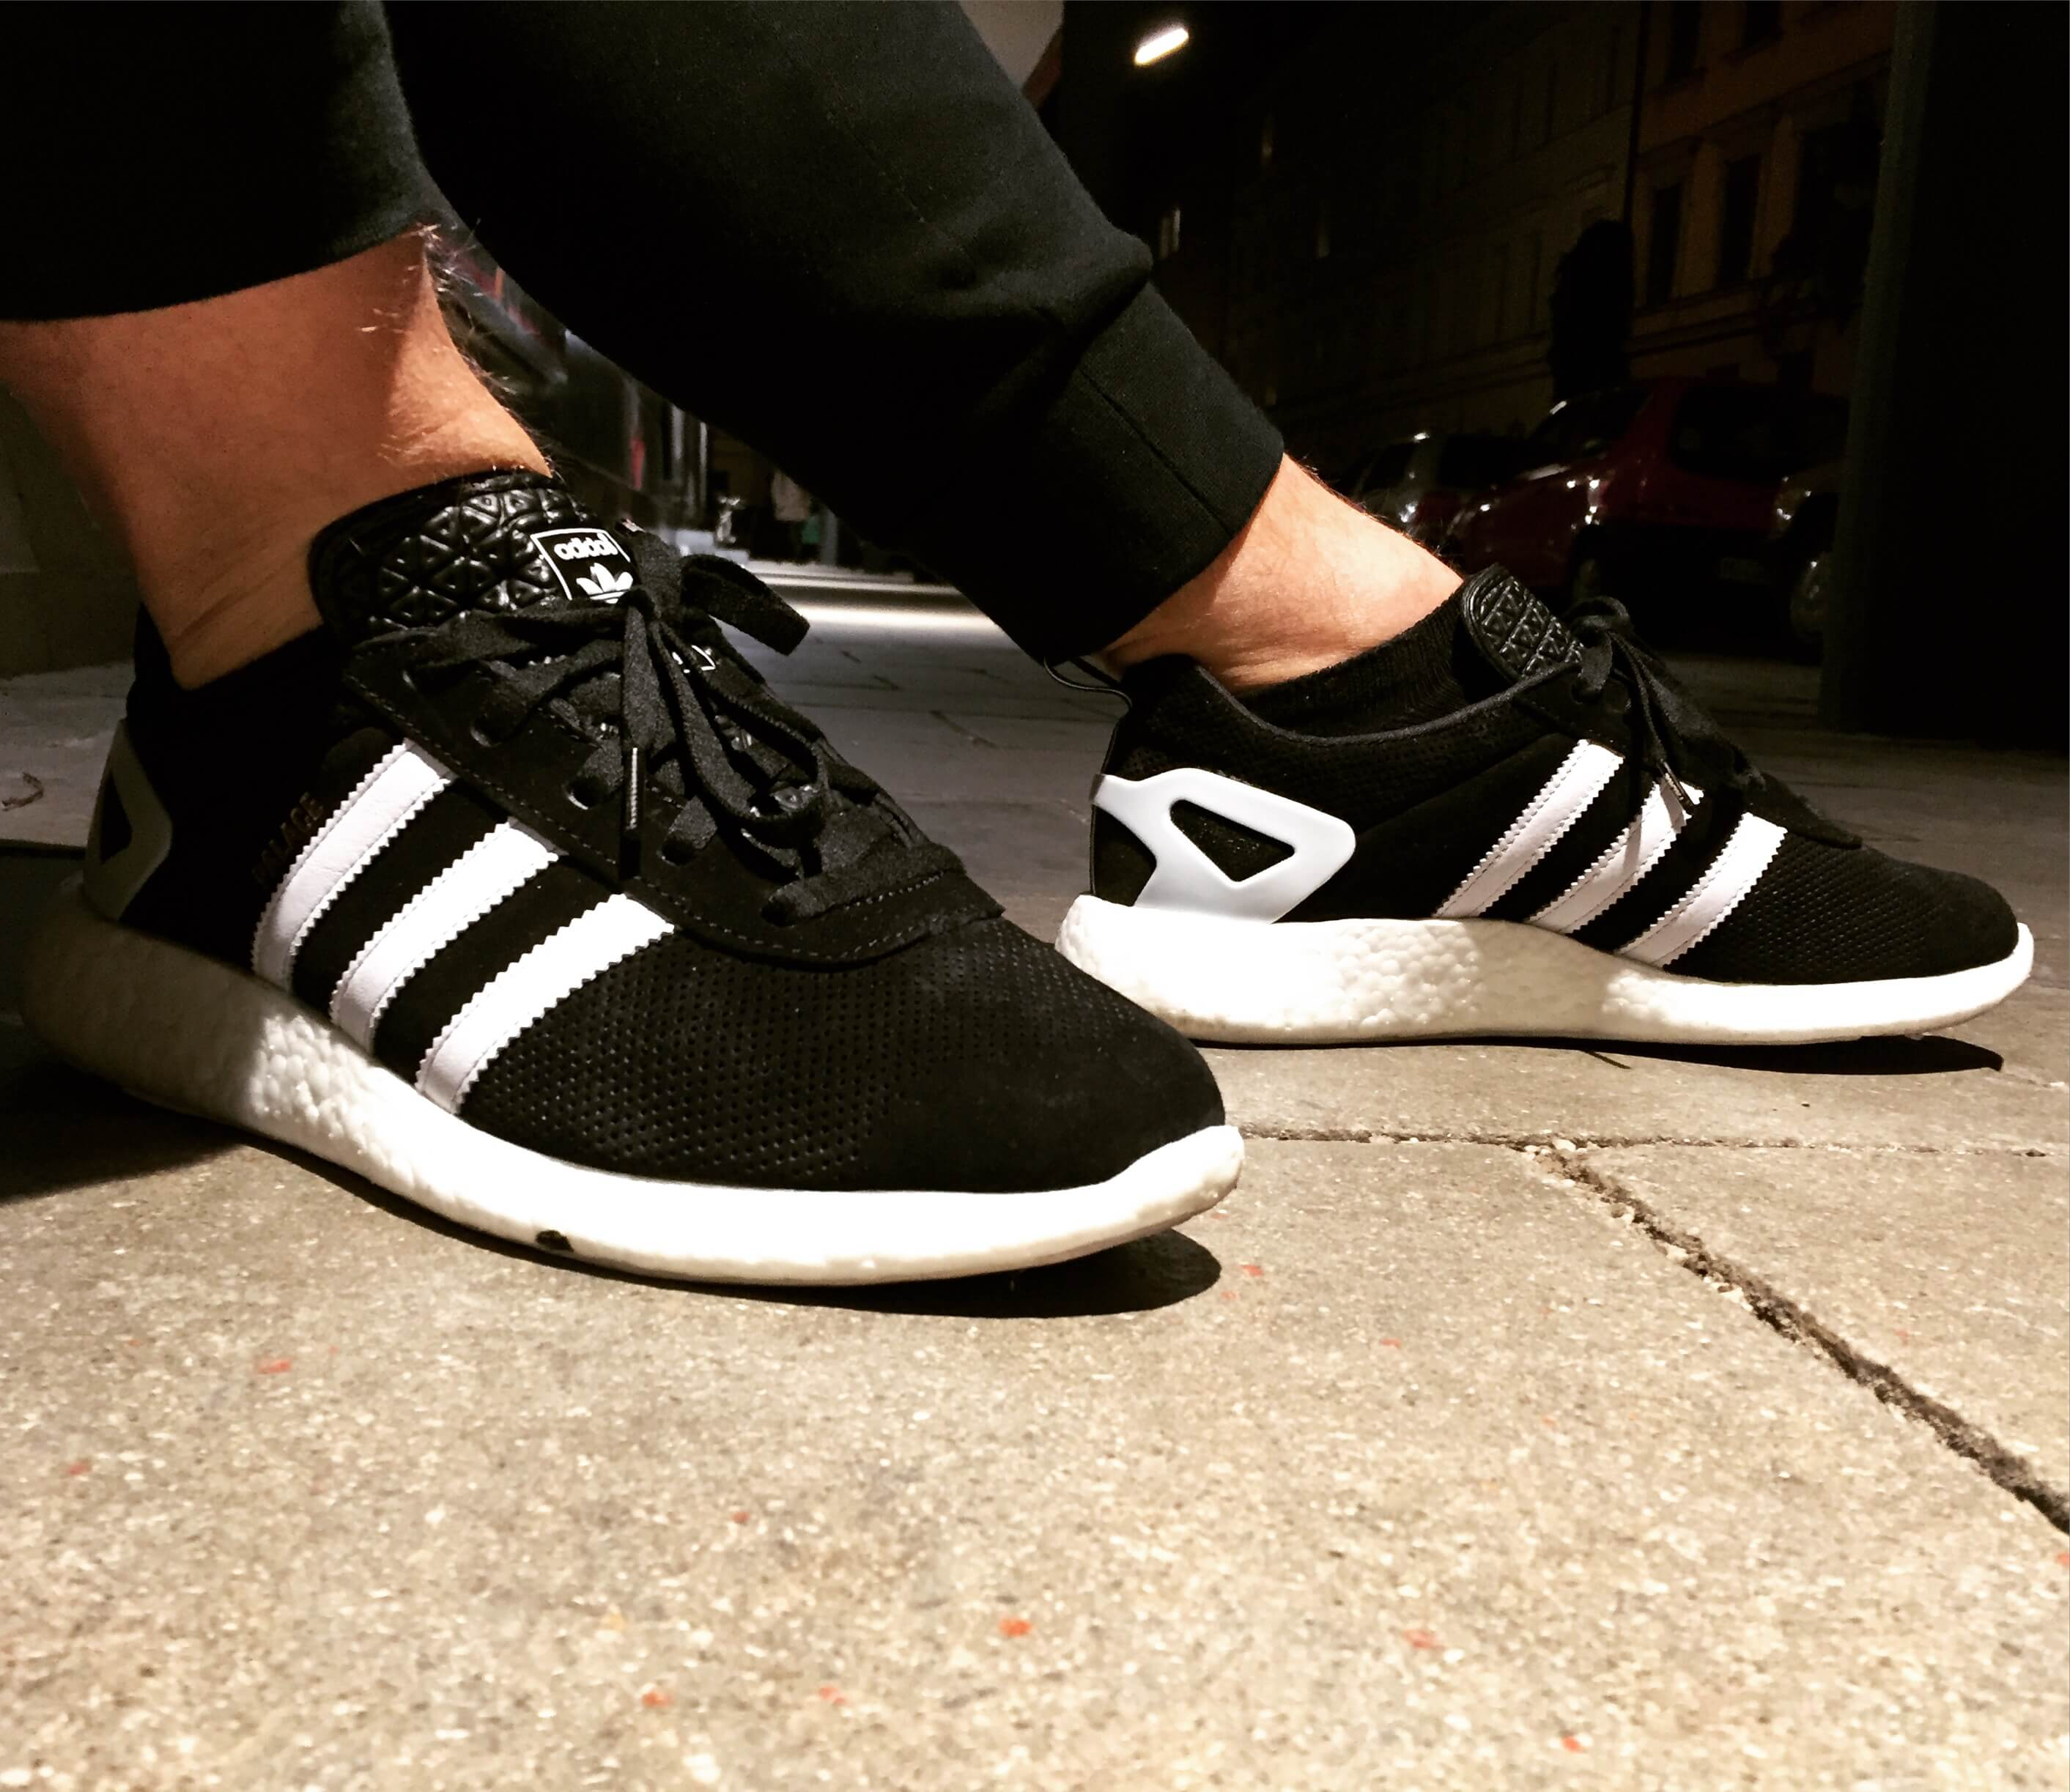 Adidas-Palace-Pro-Boost-Side-View-Alt-Benstah-Onfeet